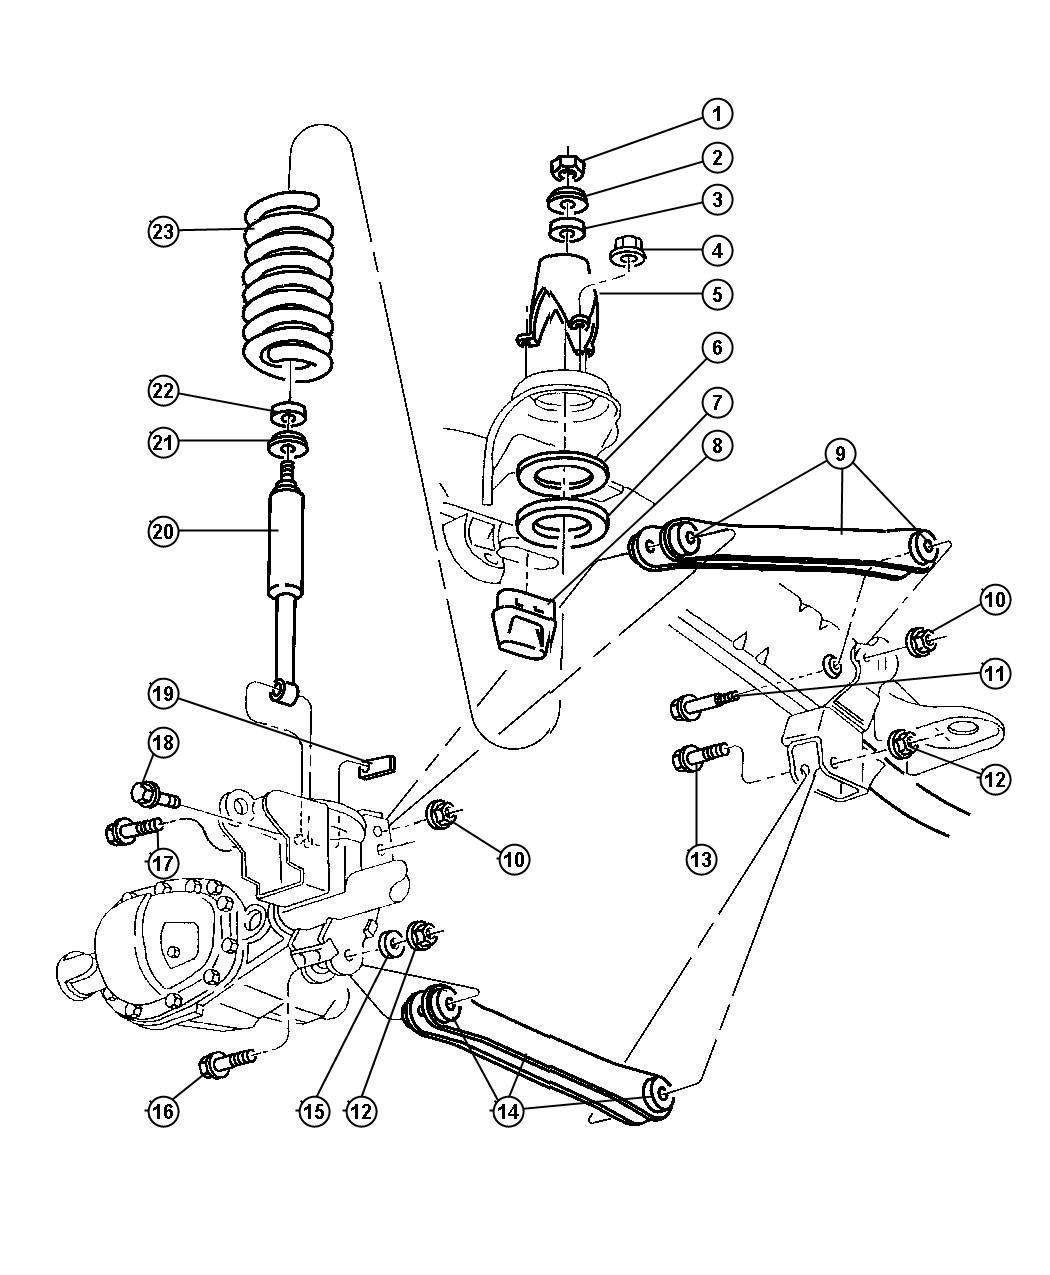 2000 Dodge Dakota Seat Diagram, 2000, Free Engine Image